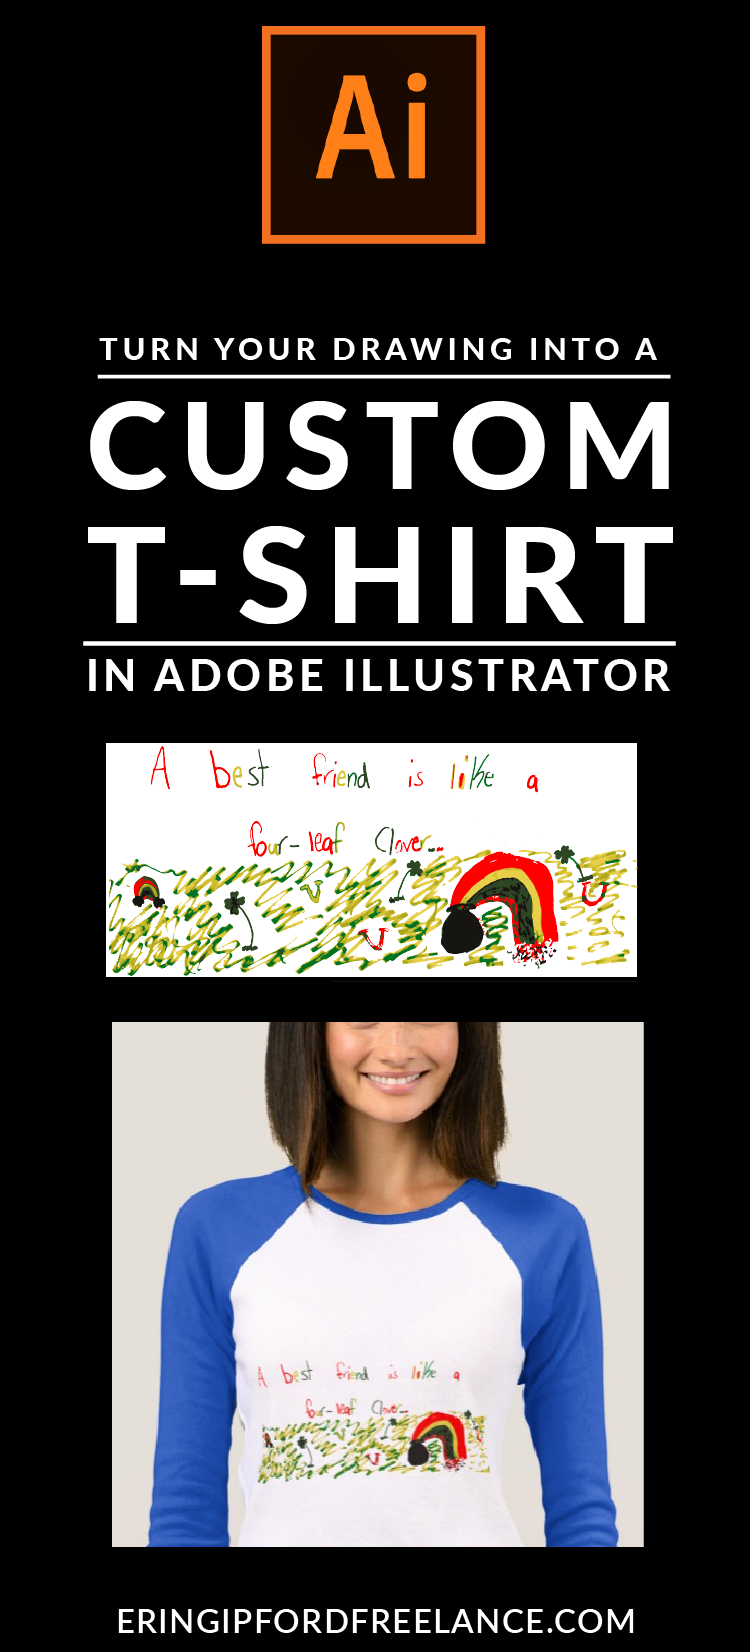 Design t shirt adobe illustrator tutorial - Adobe Illustrator Tutorial How To Print Your Drawing On A Tshirt